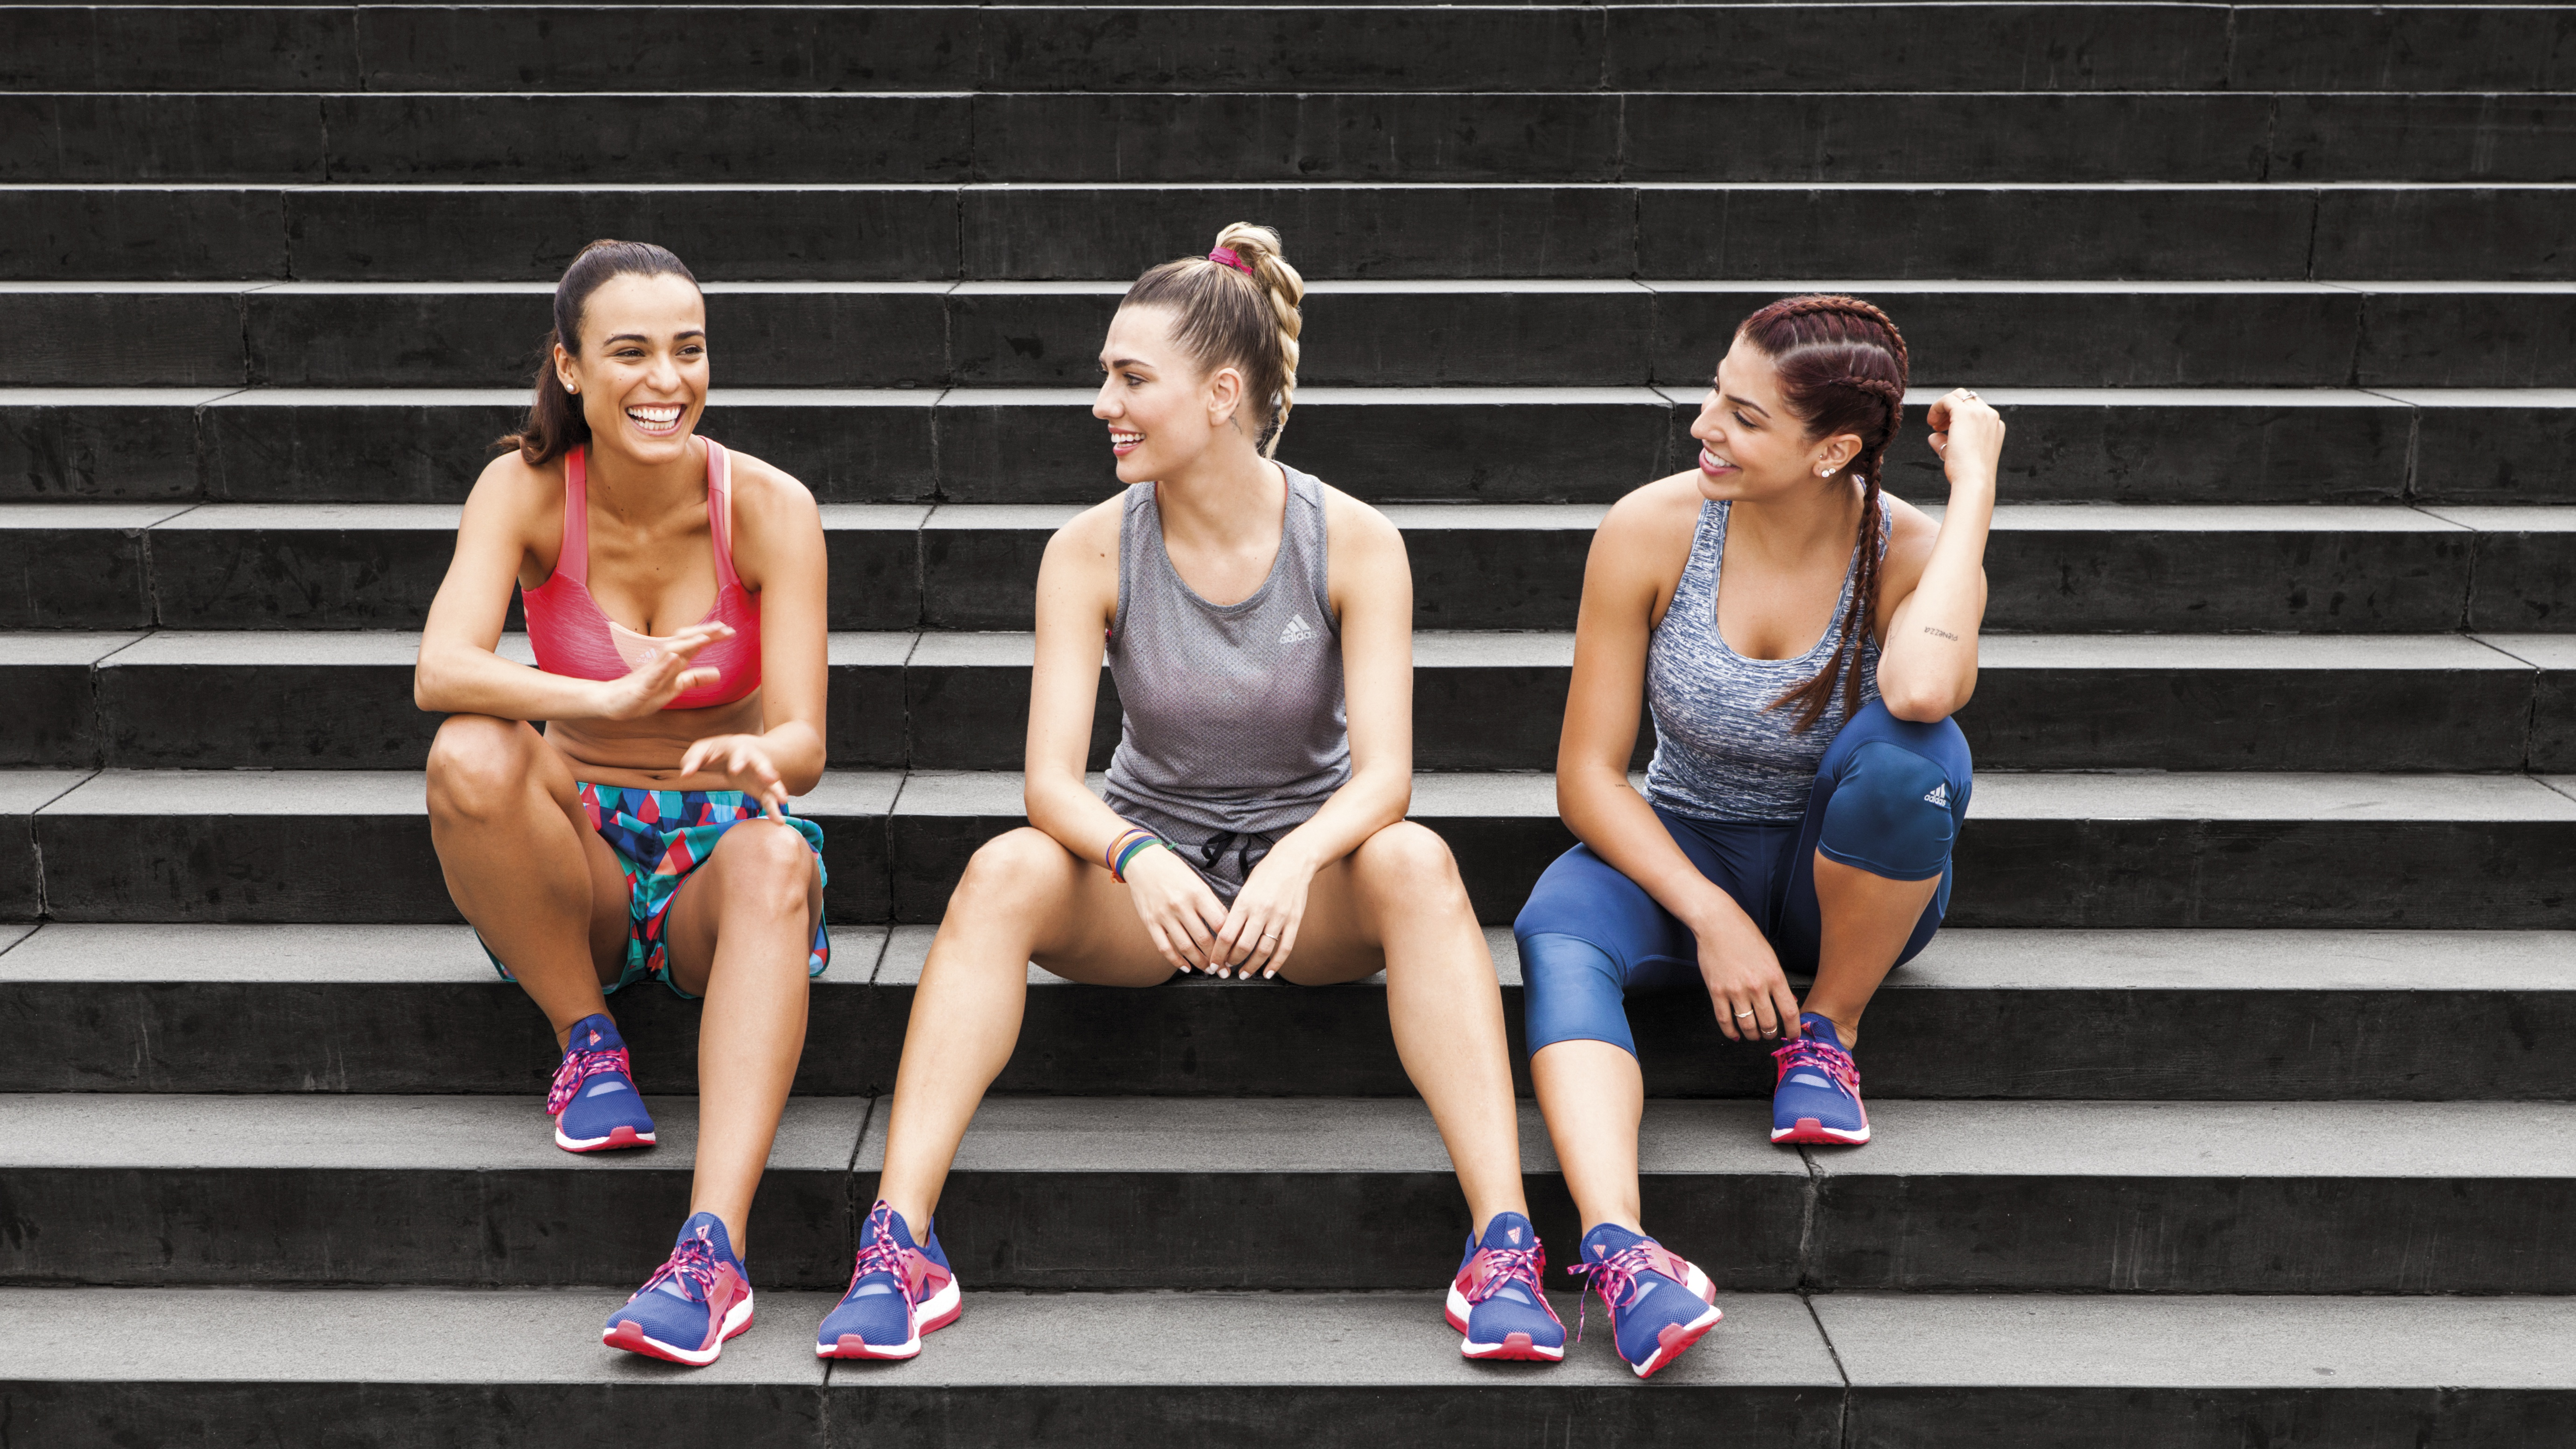 deseo Literatura Raramente  Adidas is launching a sneaker engineered specifically for female runners —  Quartz